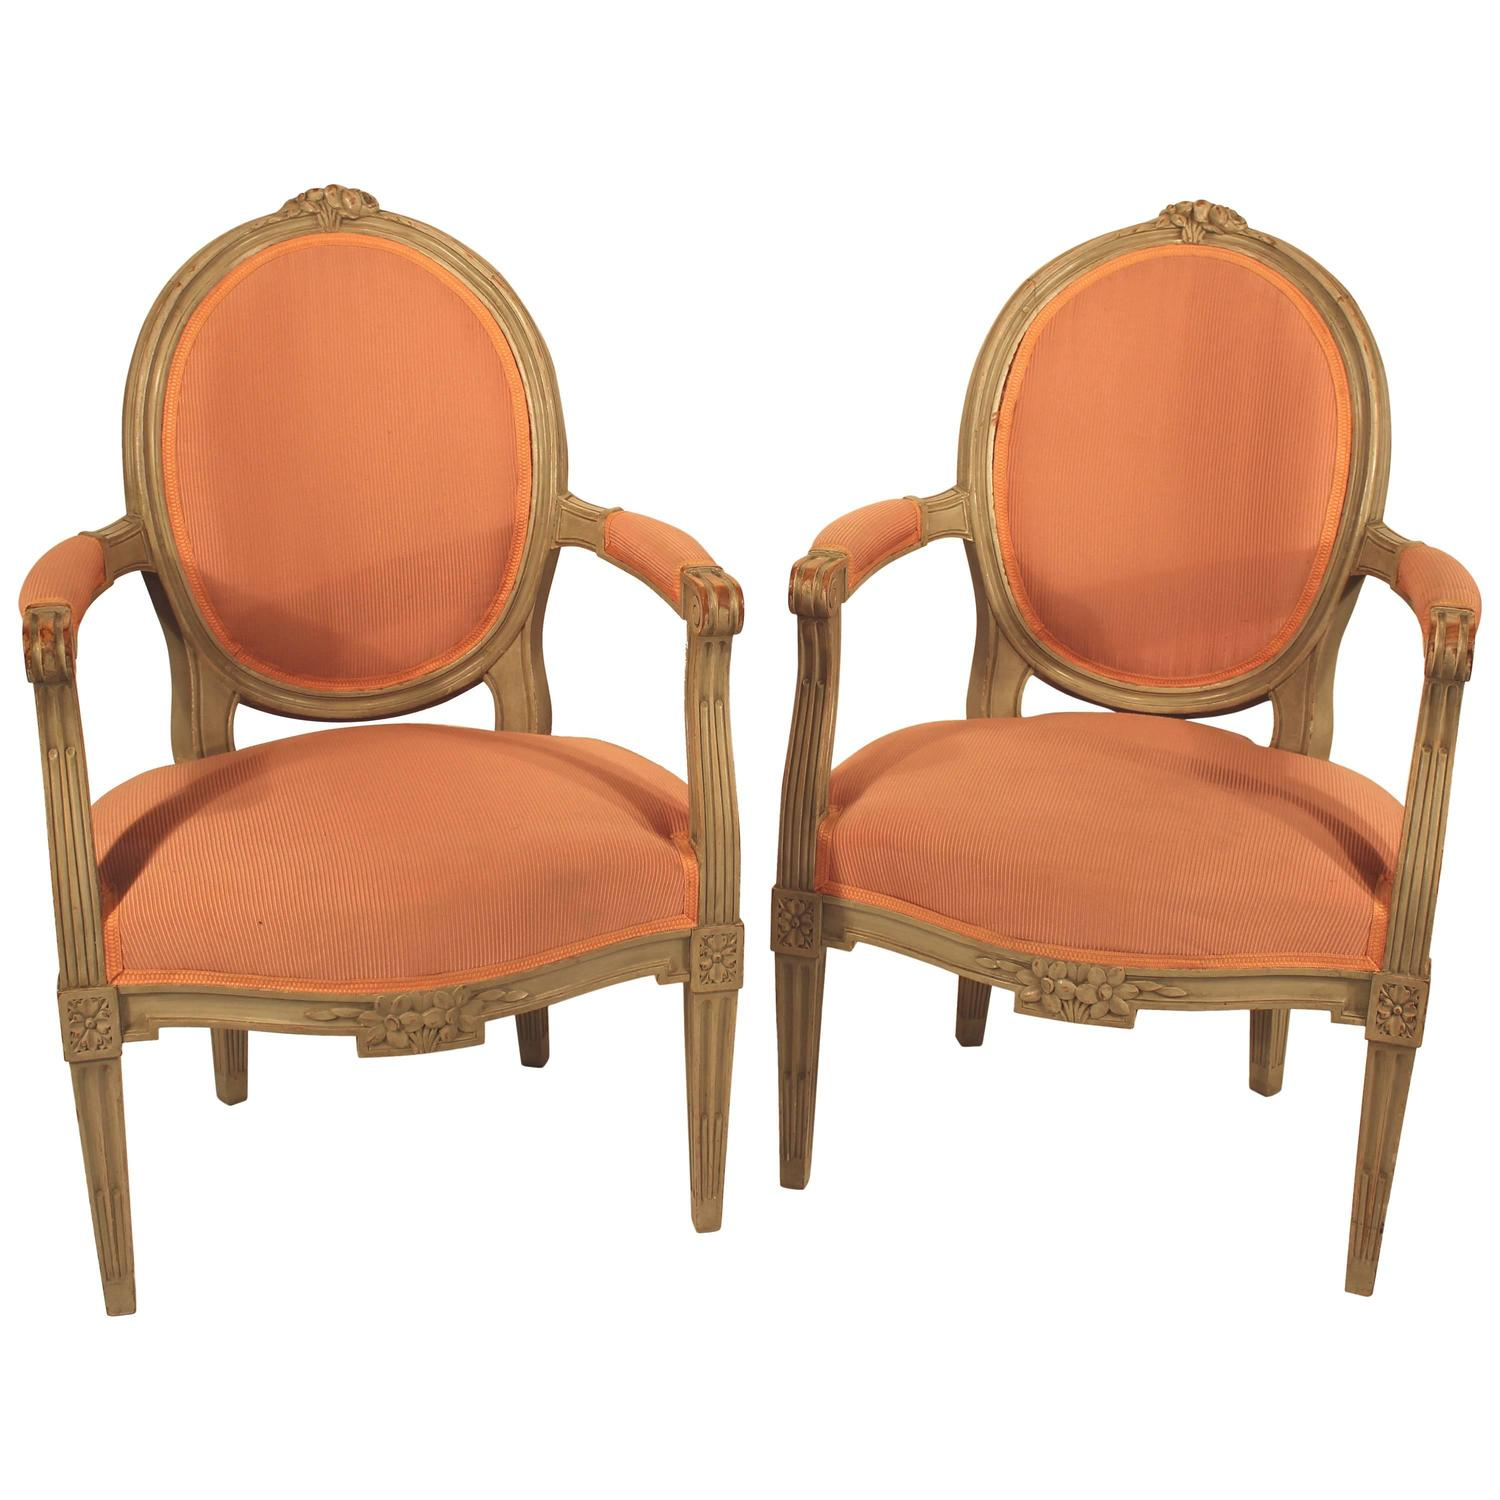 pair of french louis xvi style fauteuils for sale at 1stdibs. Black Bedroom Furniture Sets. Home Design Ideas